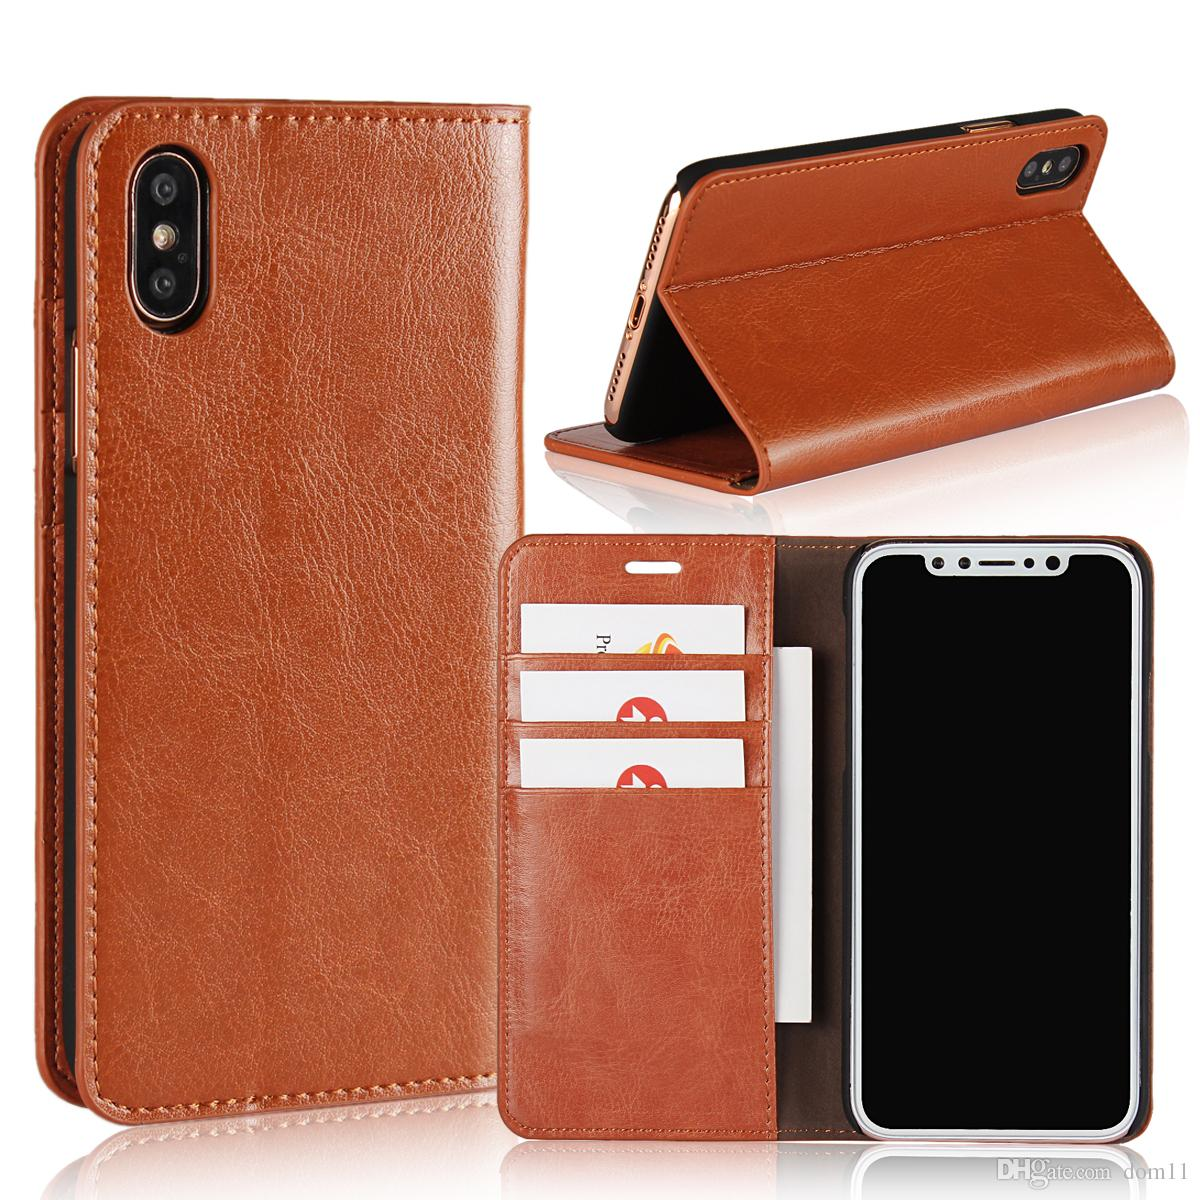 for iPhone x 8 7 plus case luxury handmade Genuine leather multi-function wallet kickstand card slot flip cover for apple iphone x